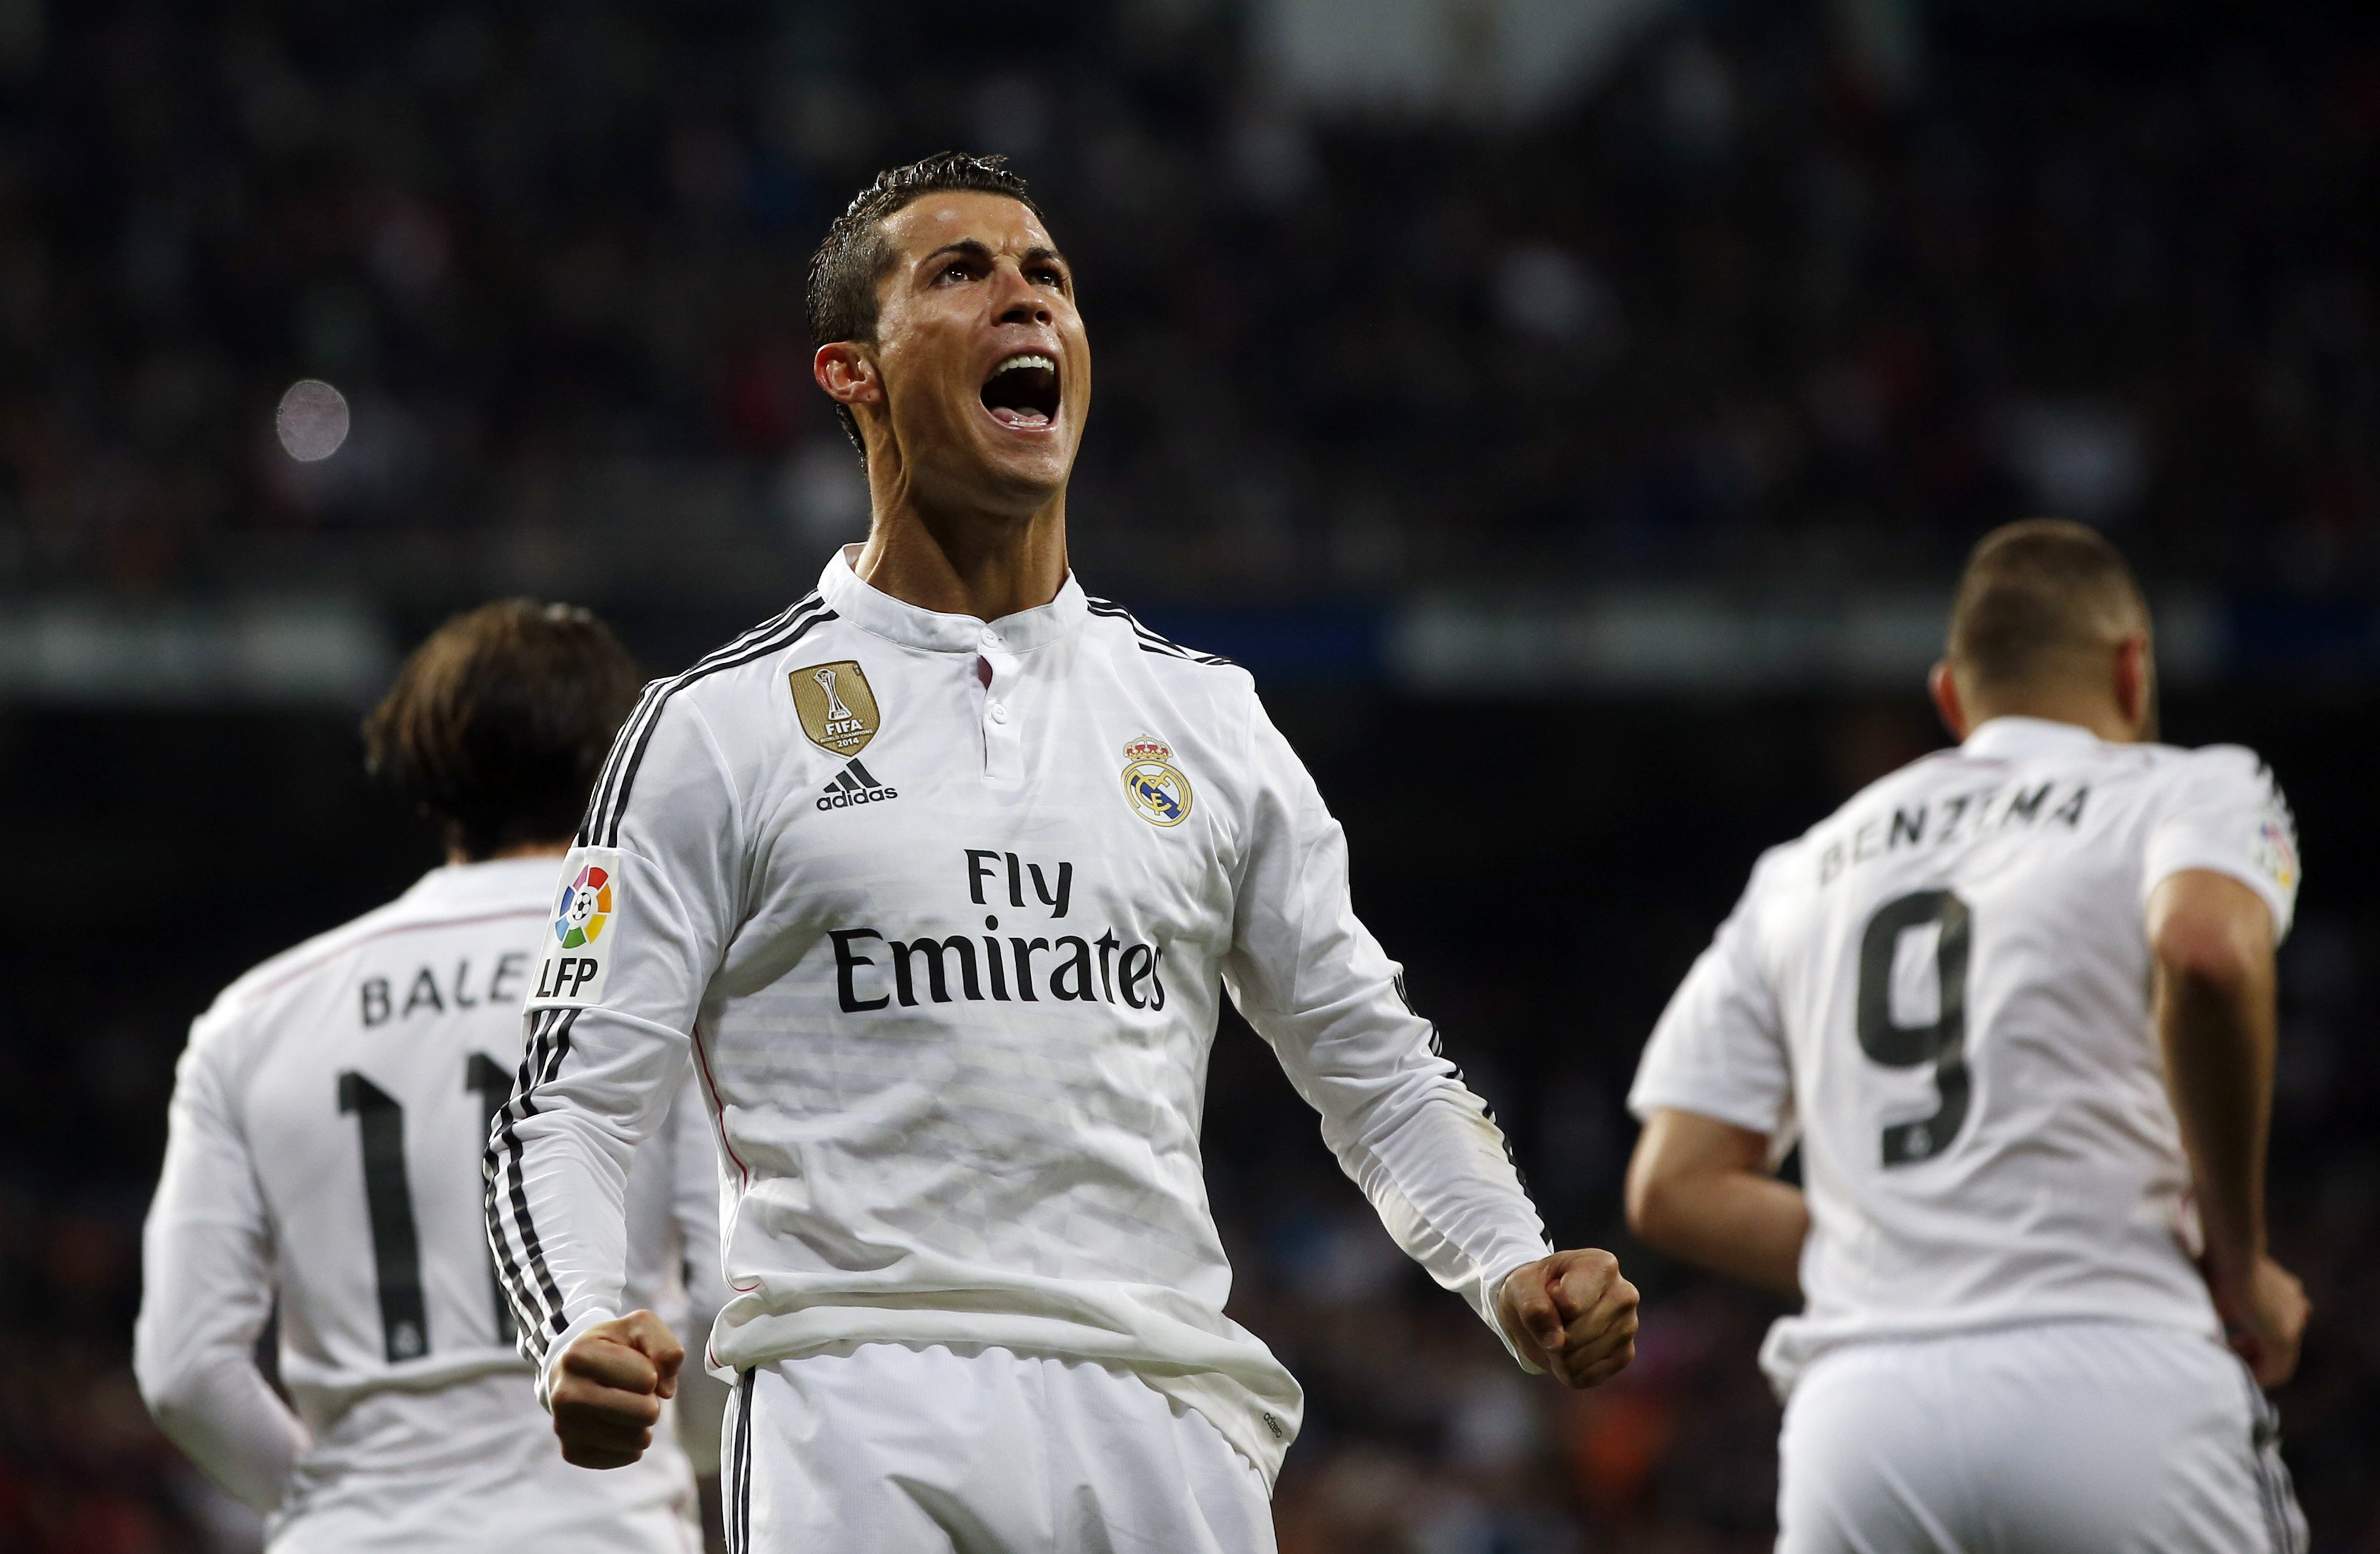 Real Madrid's Cristiano Ronaldo celebrates his goal against Villarreal during their Spanish first division soccer match at Santiago Bernabeu stadium in Madrid, March 1, 2015. REUTERS/Susana Vera (SPAIN - Tags: SPORT SOCCER)